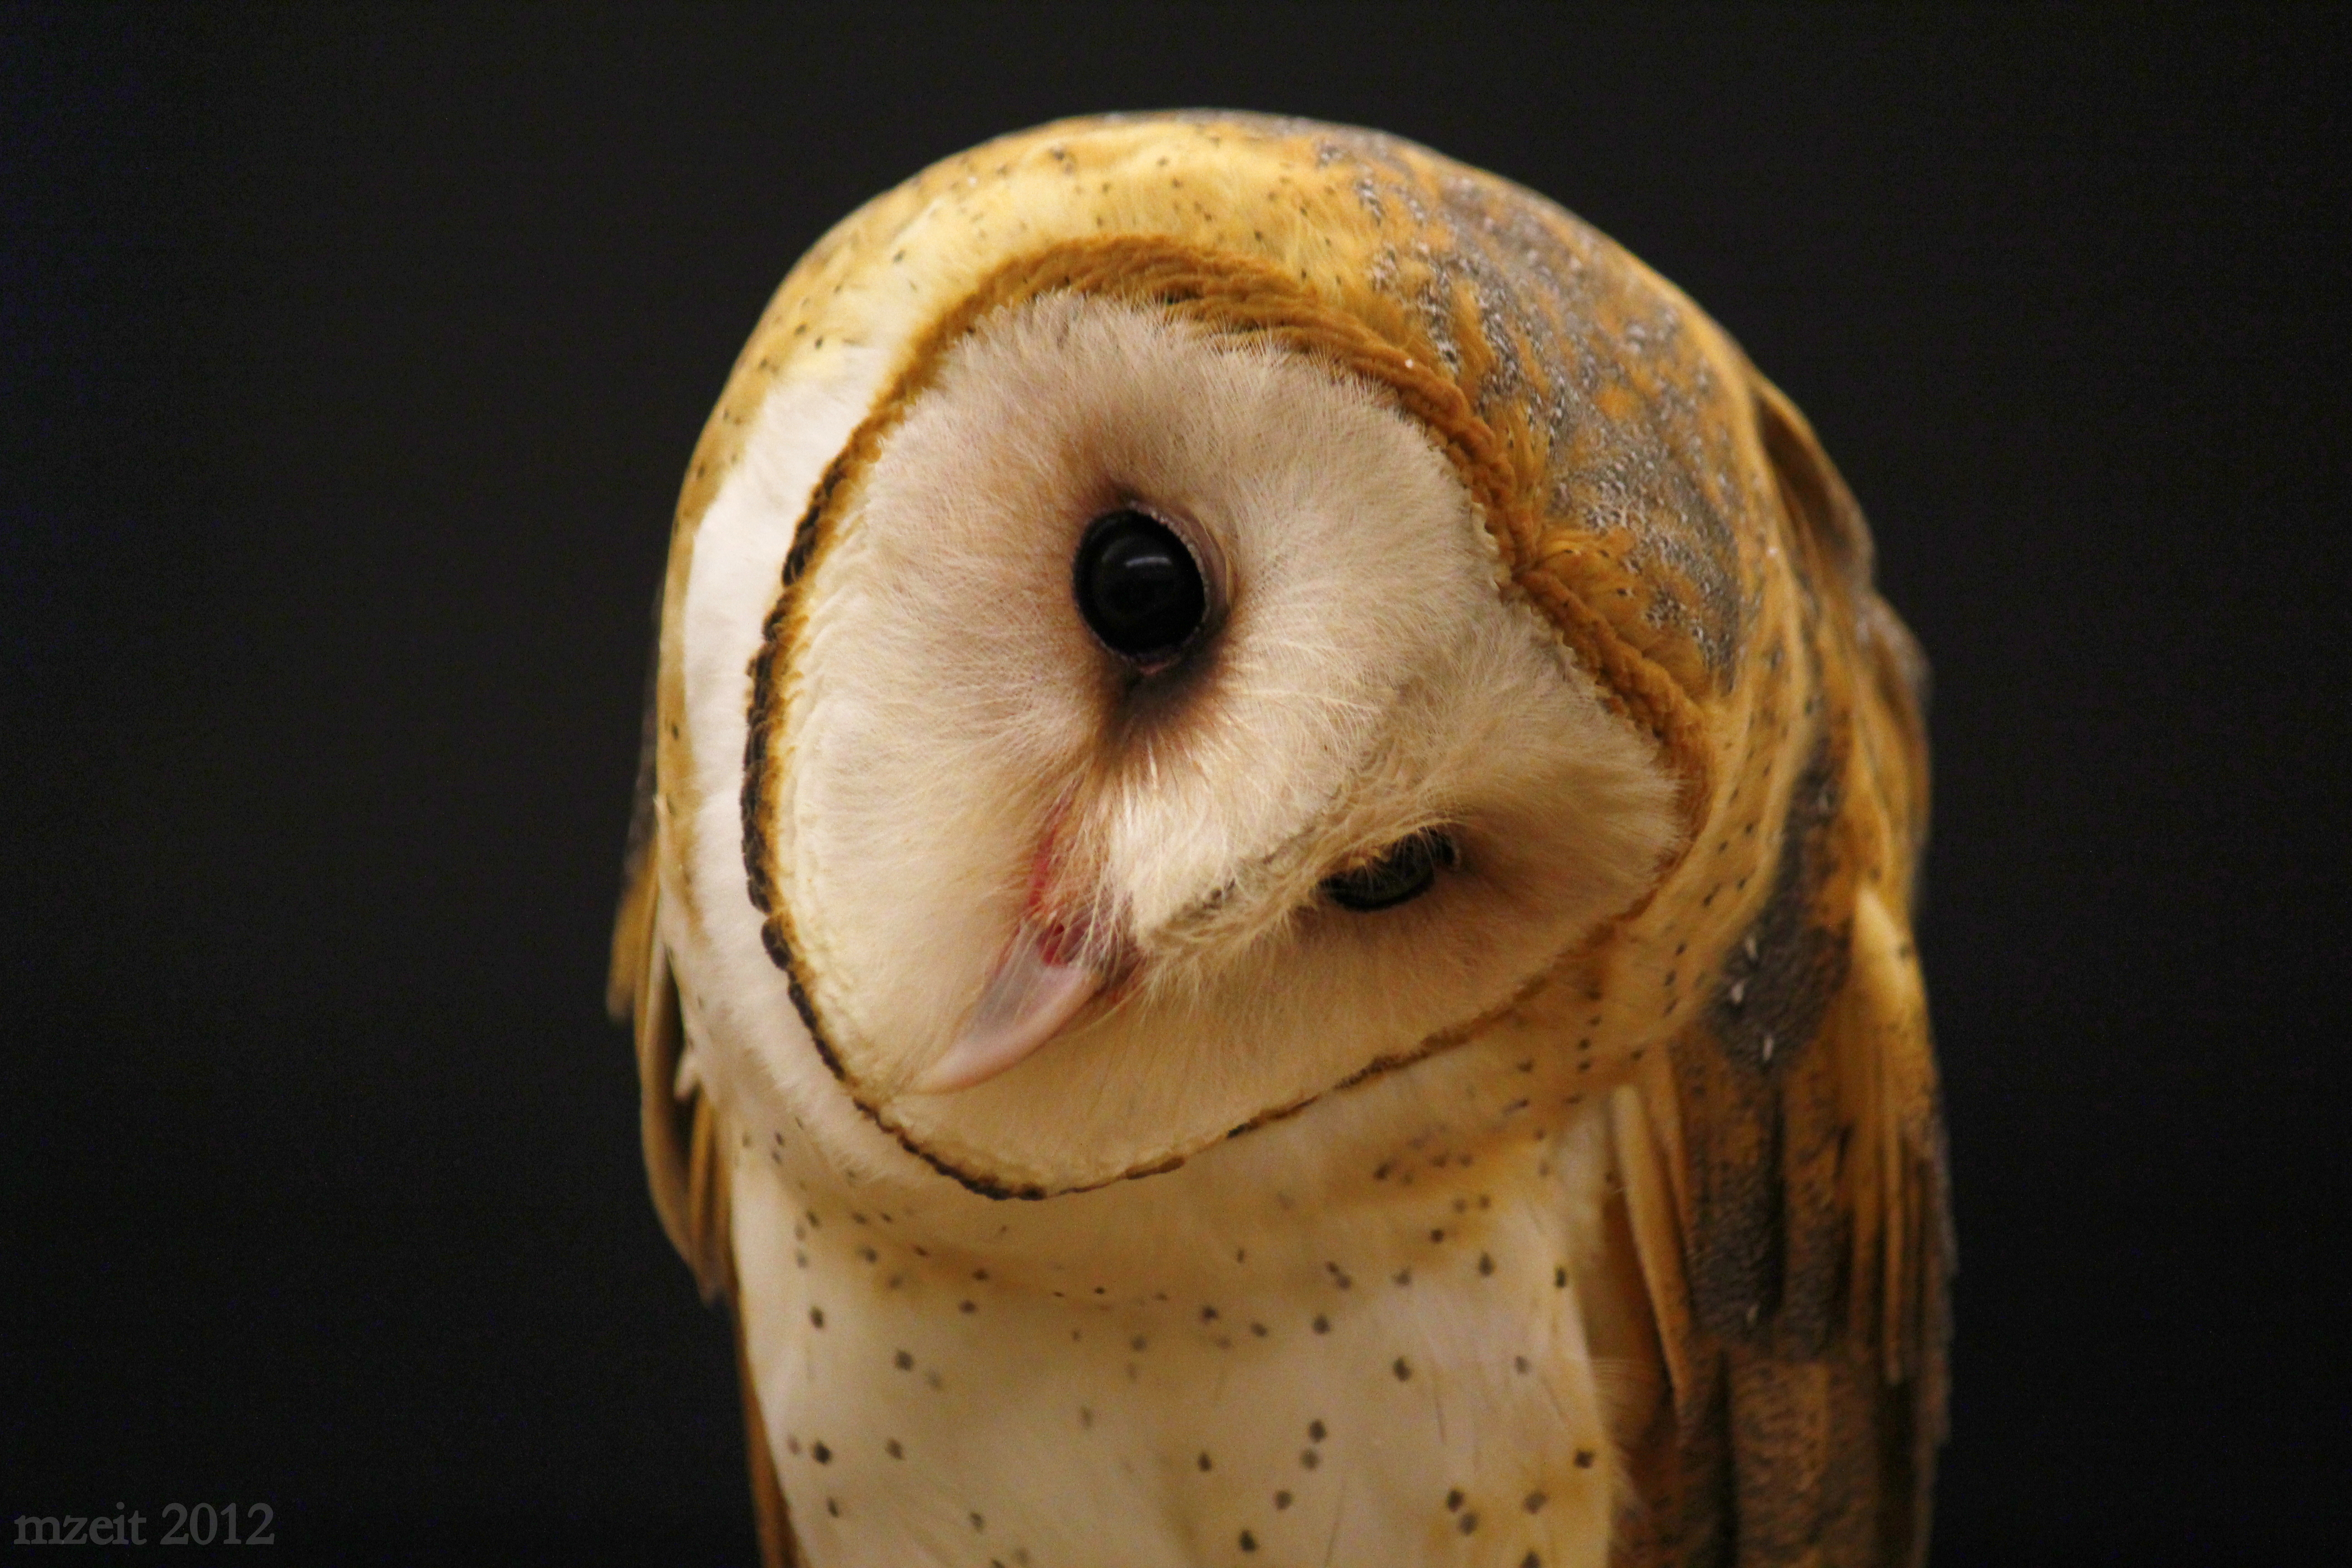 Captive Barn Owl at the Vermont Institute of Natural Sciences, 12-28-12.